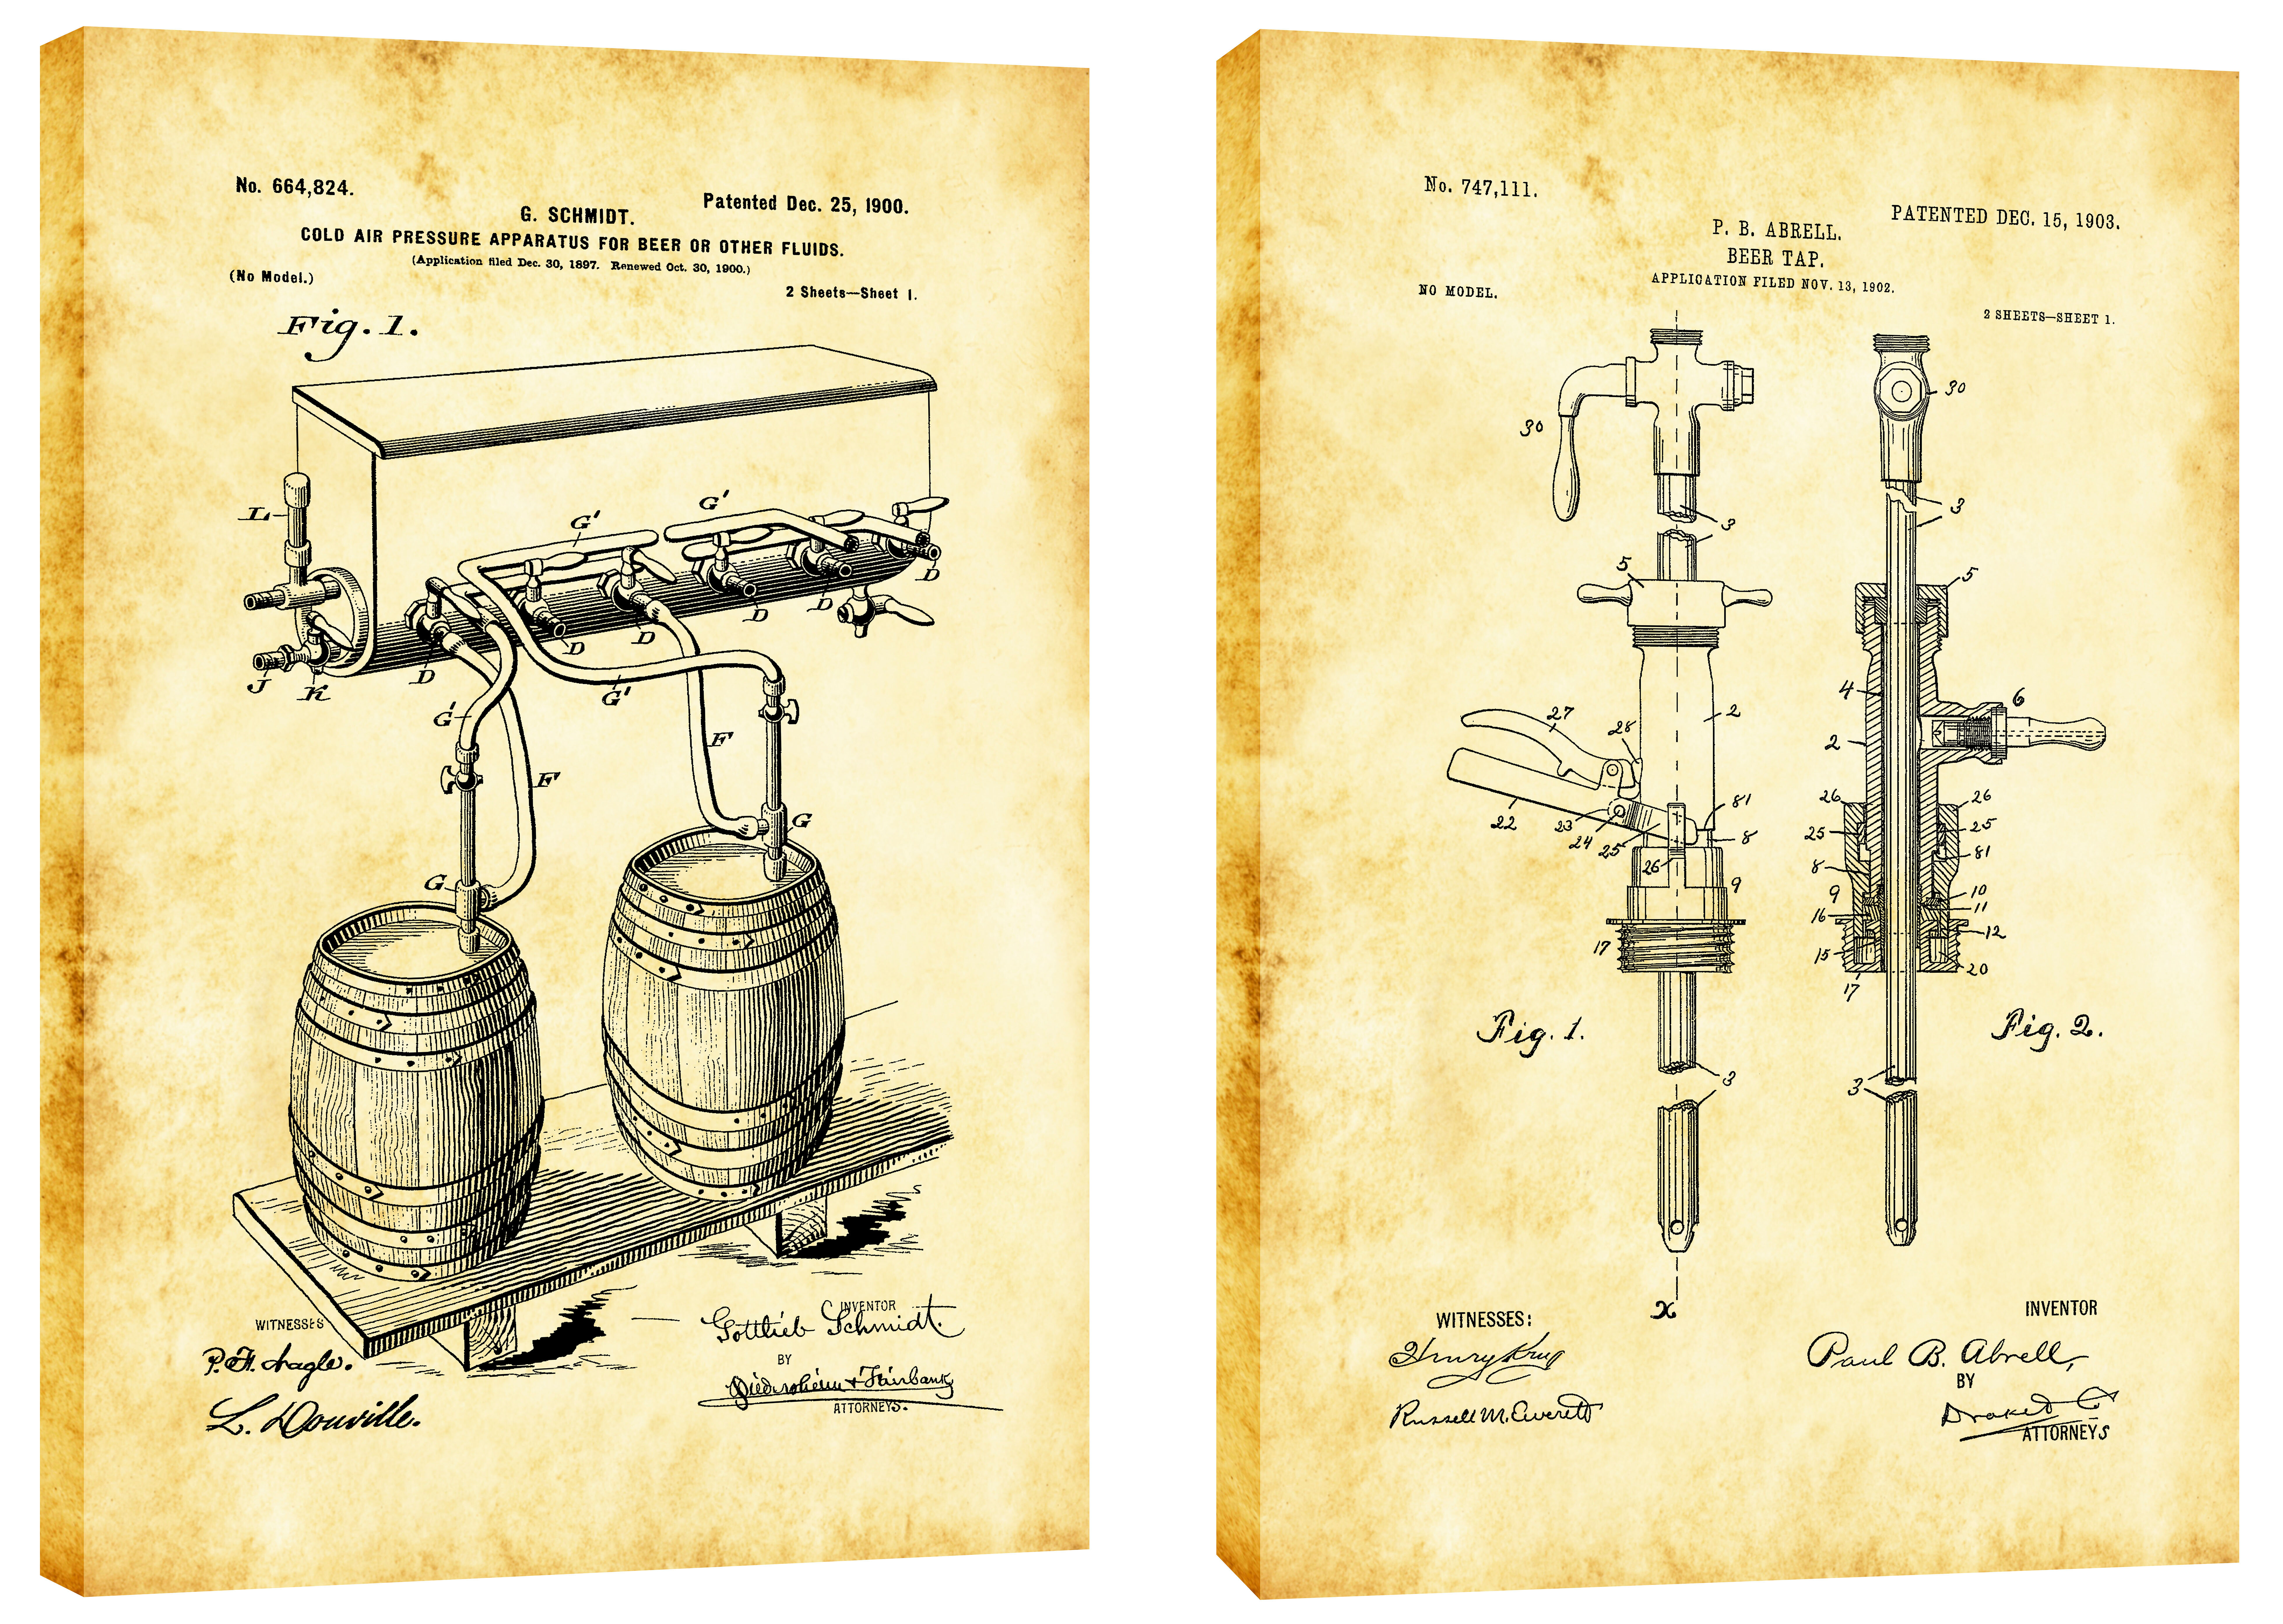 Epic graffiti for the love of beer diptych vintage patent blueprint epic graffiti for the love of beer diptych vintage patent blueprint 2 piece graphic art on wrapped canvas set wayfair malvernweather Choice Image